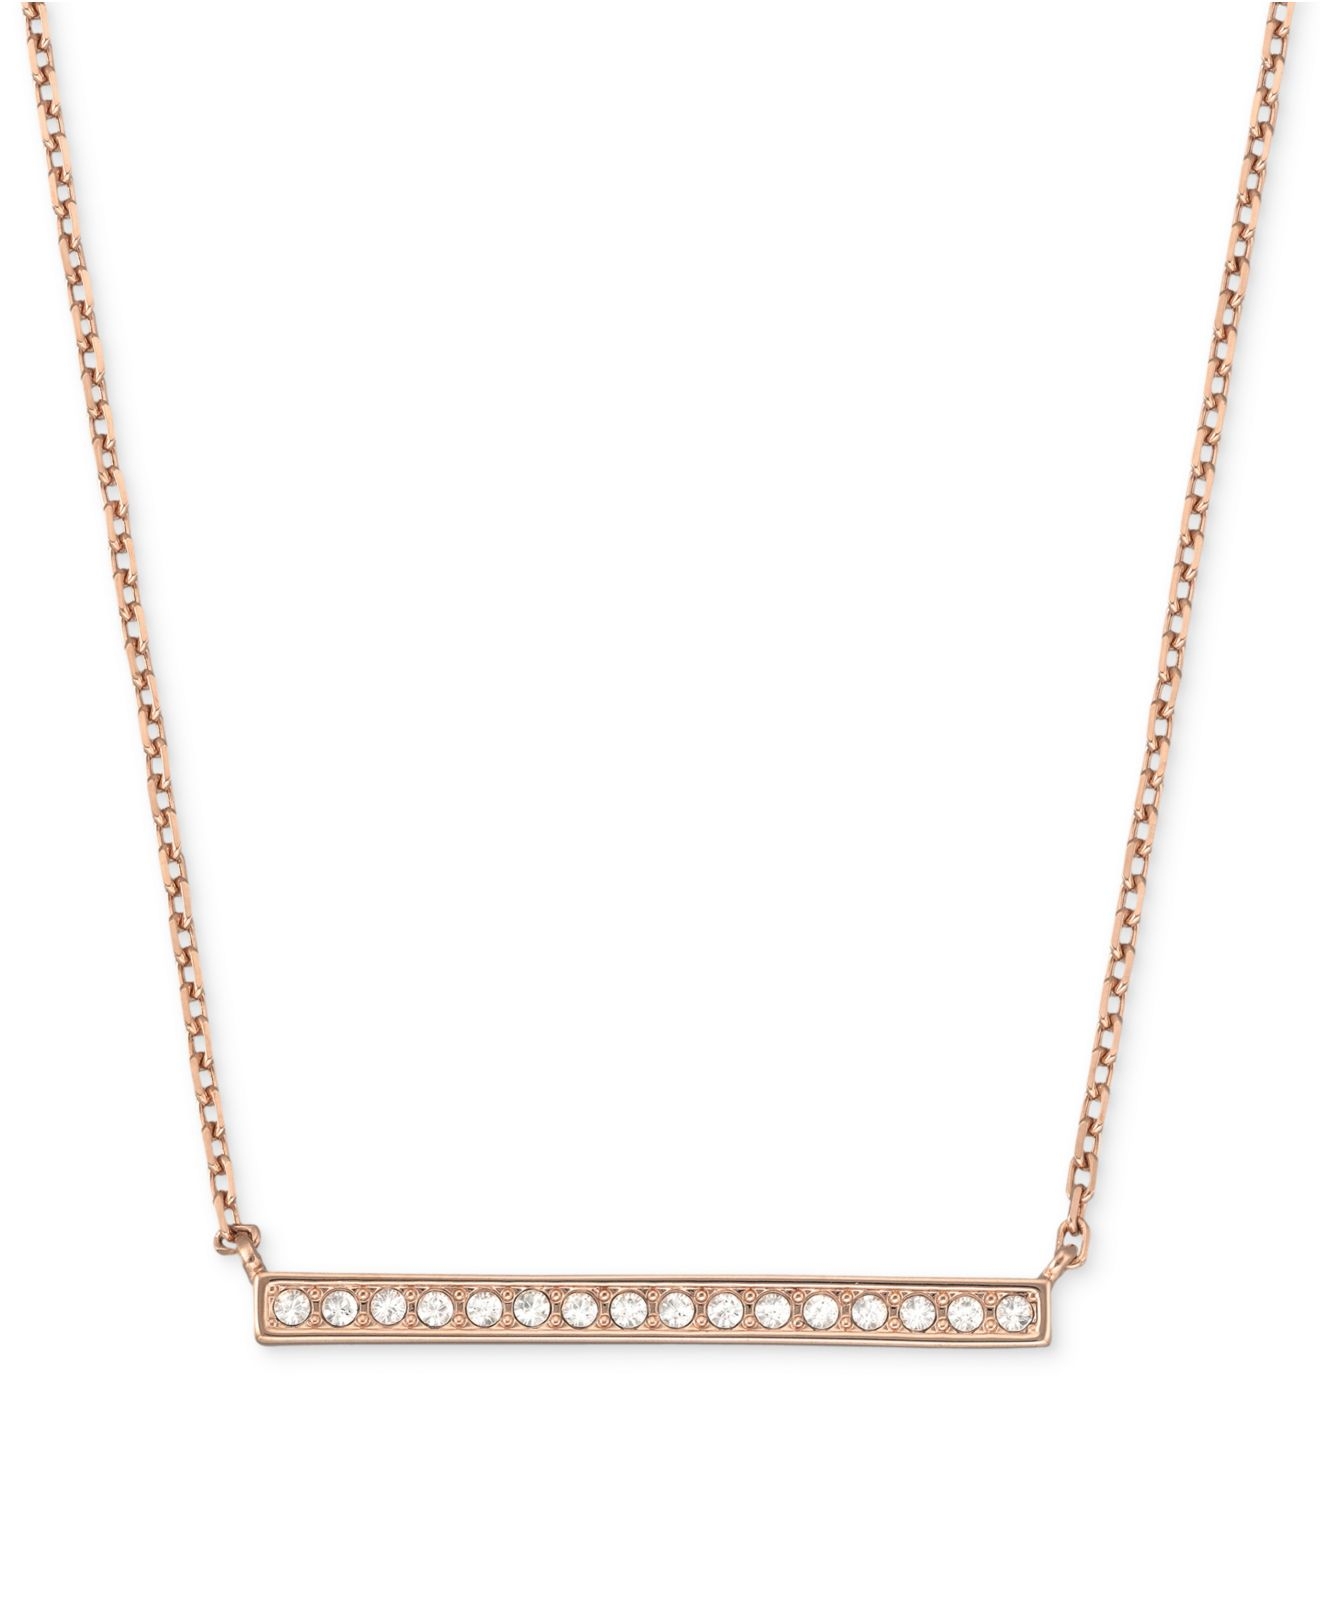 Gallery Previously Sold At Macy S Women Swarovski Crystal Necklace